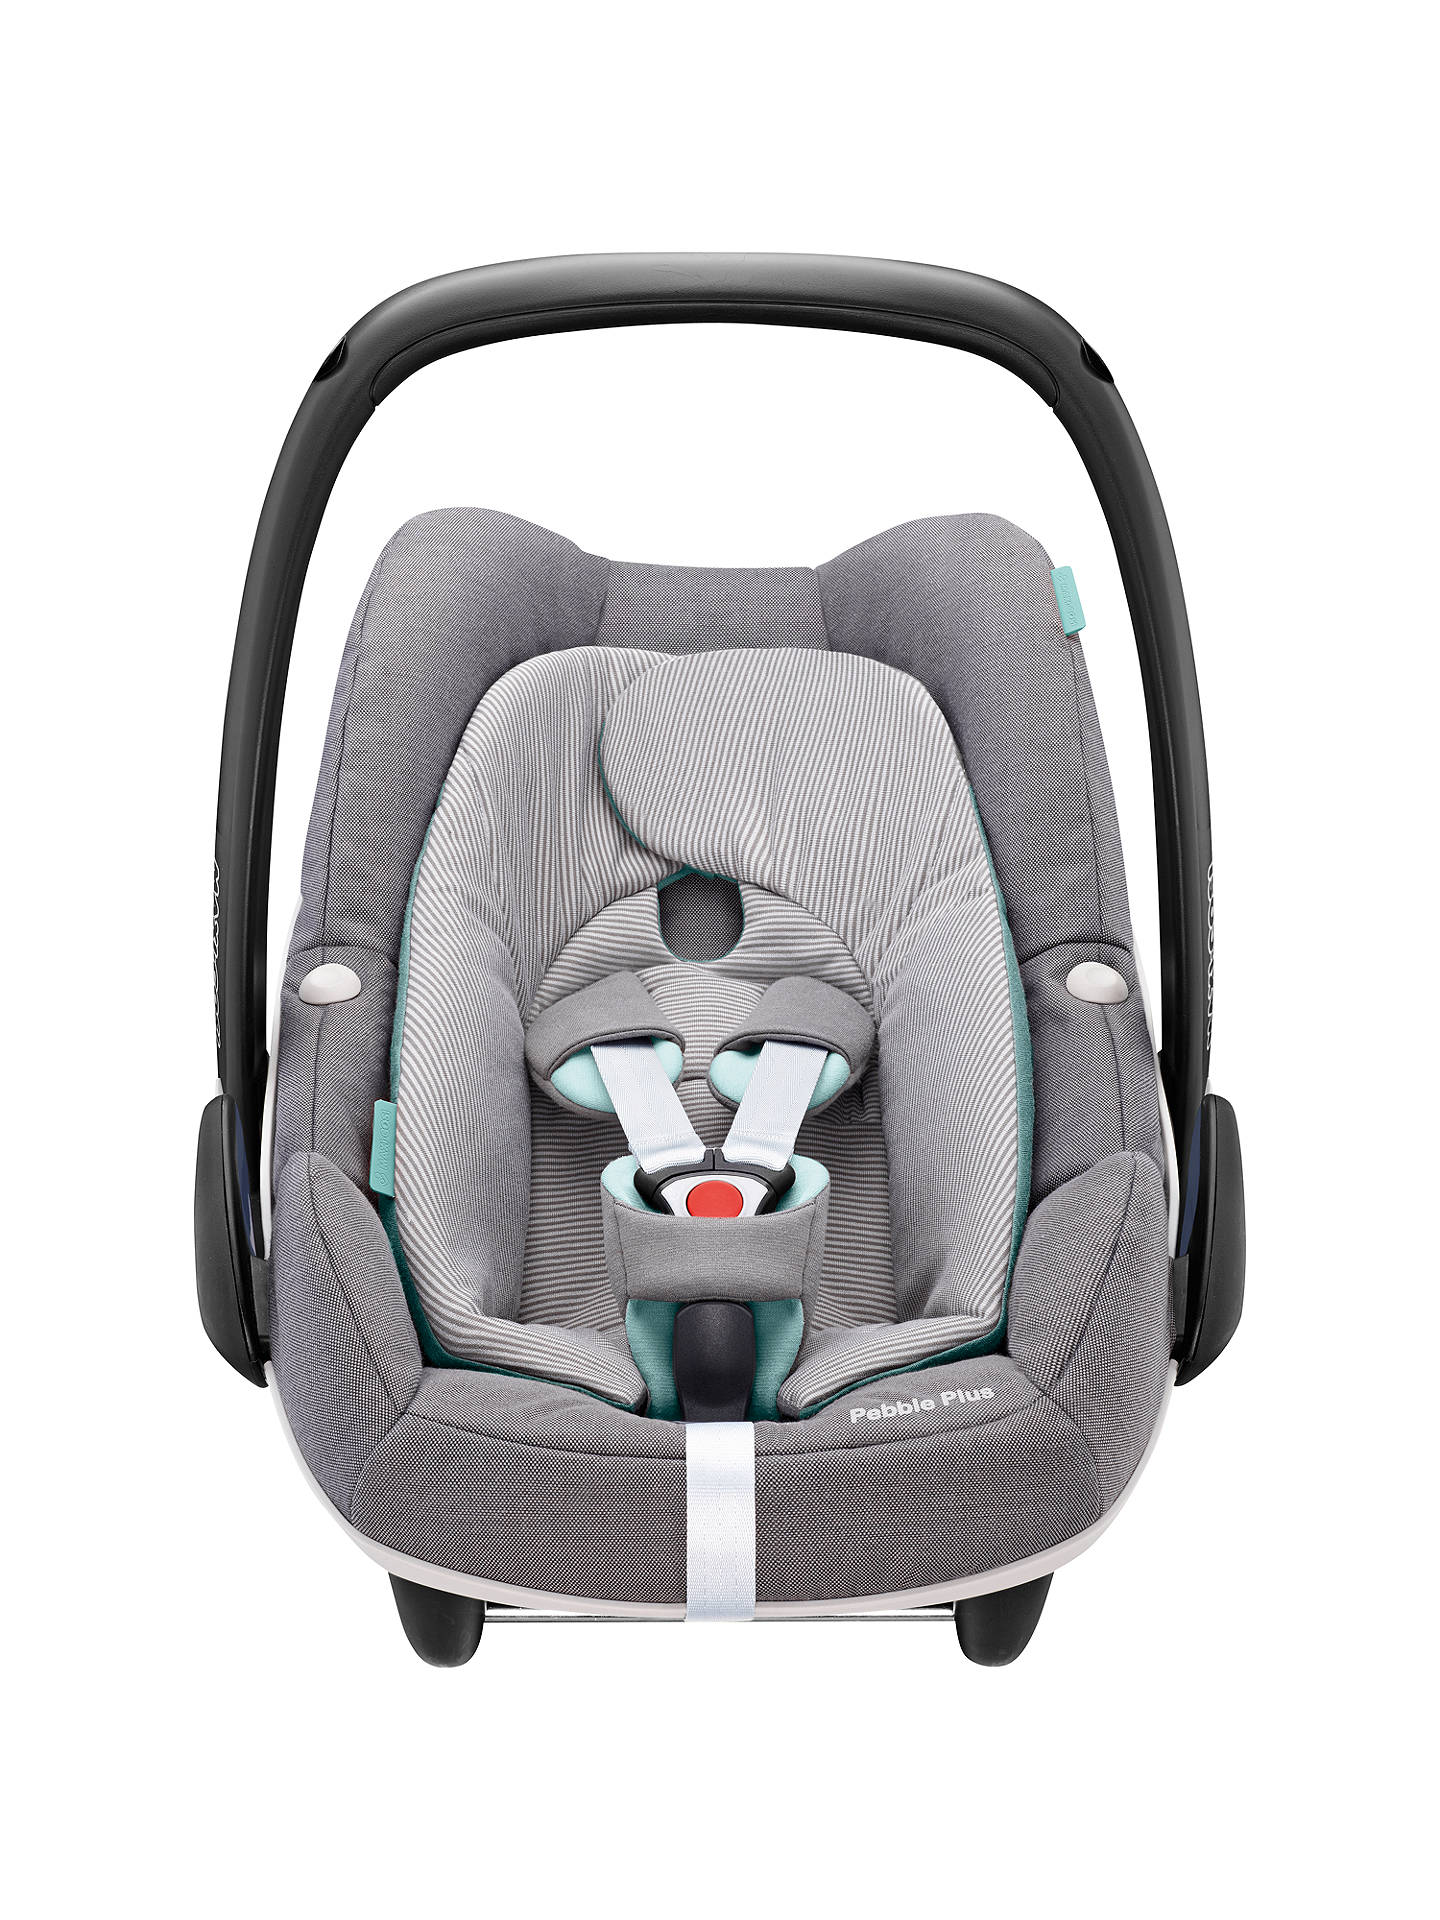 Buy Maxi-Cosi Pebble Plus i-Size Group 0+ Baby Car Seat, Concrete Grey Online at johnlewis.com